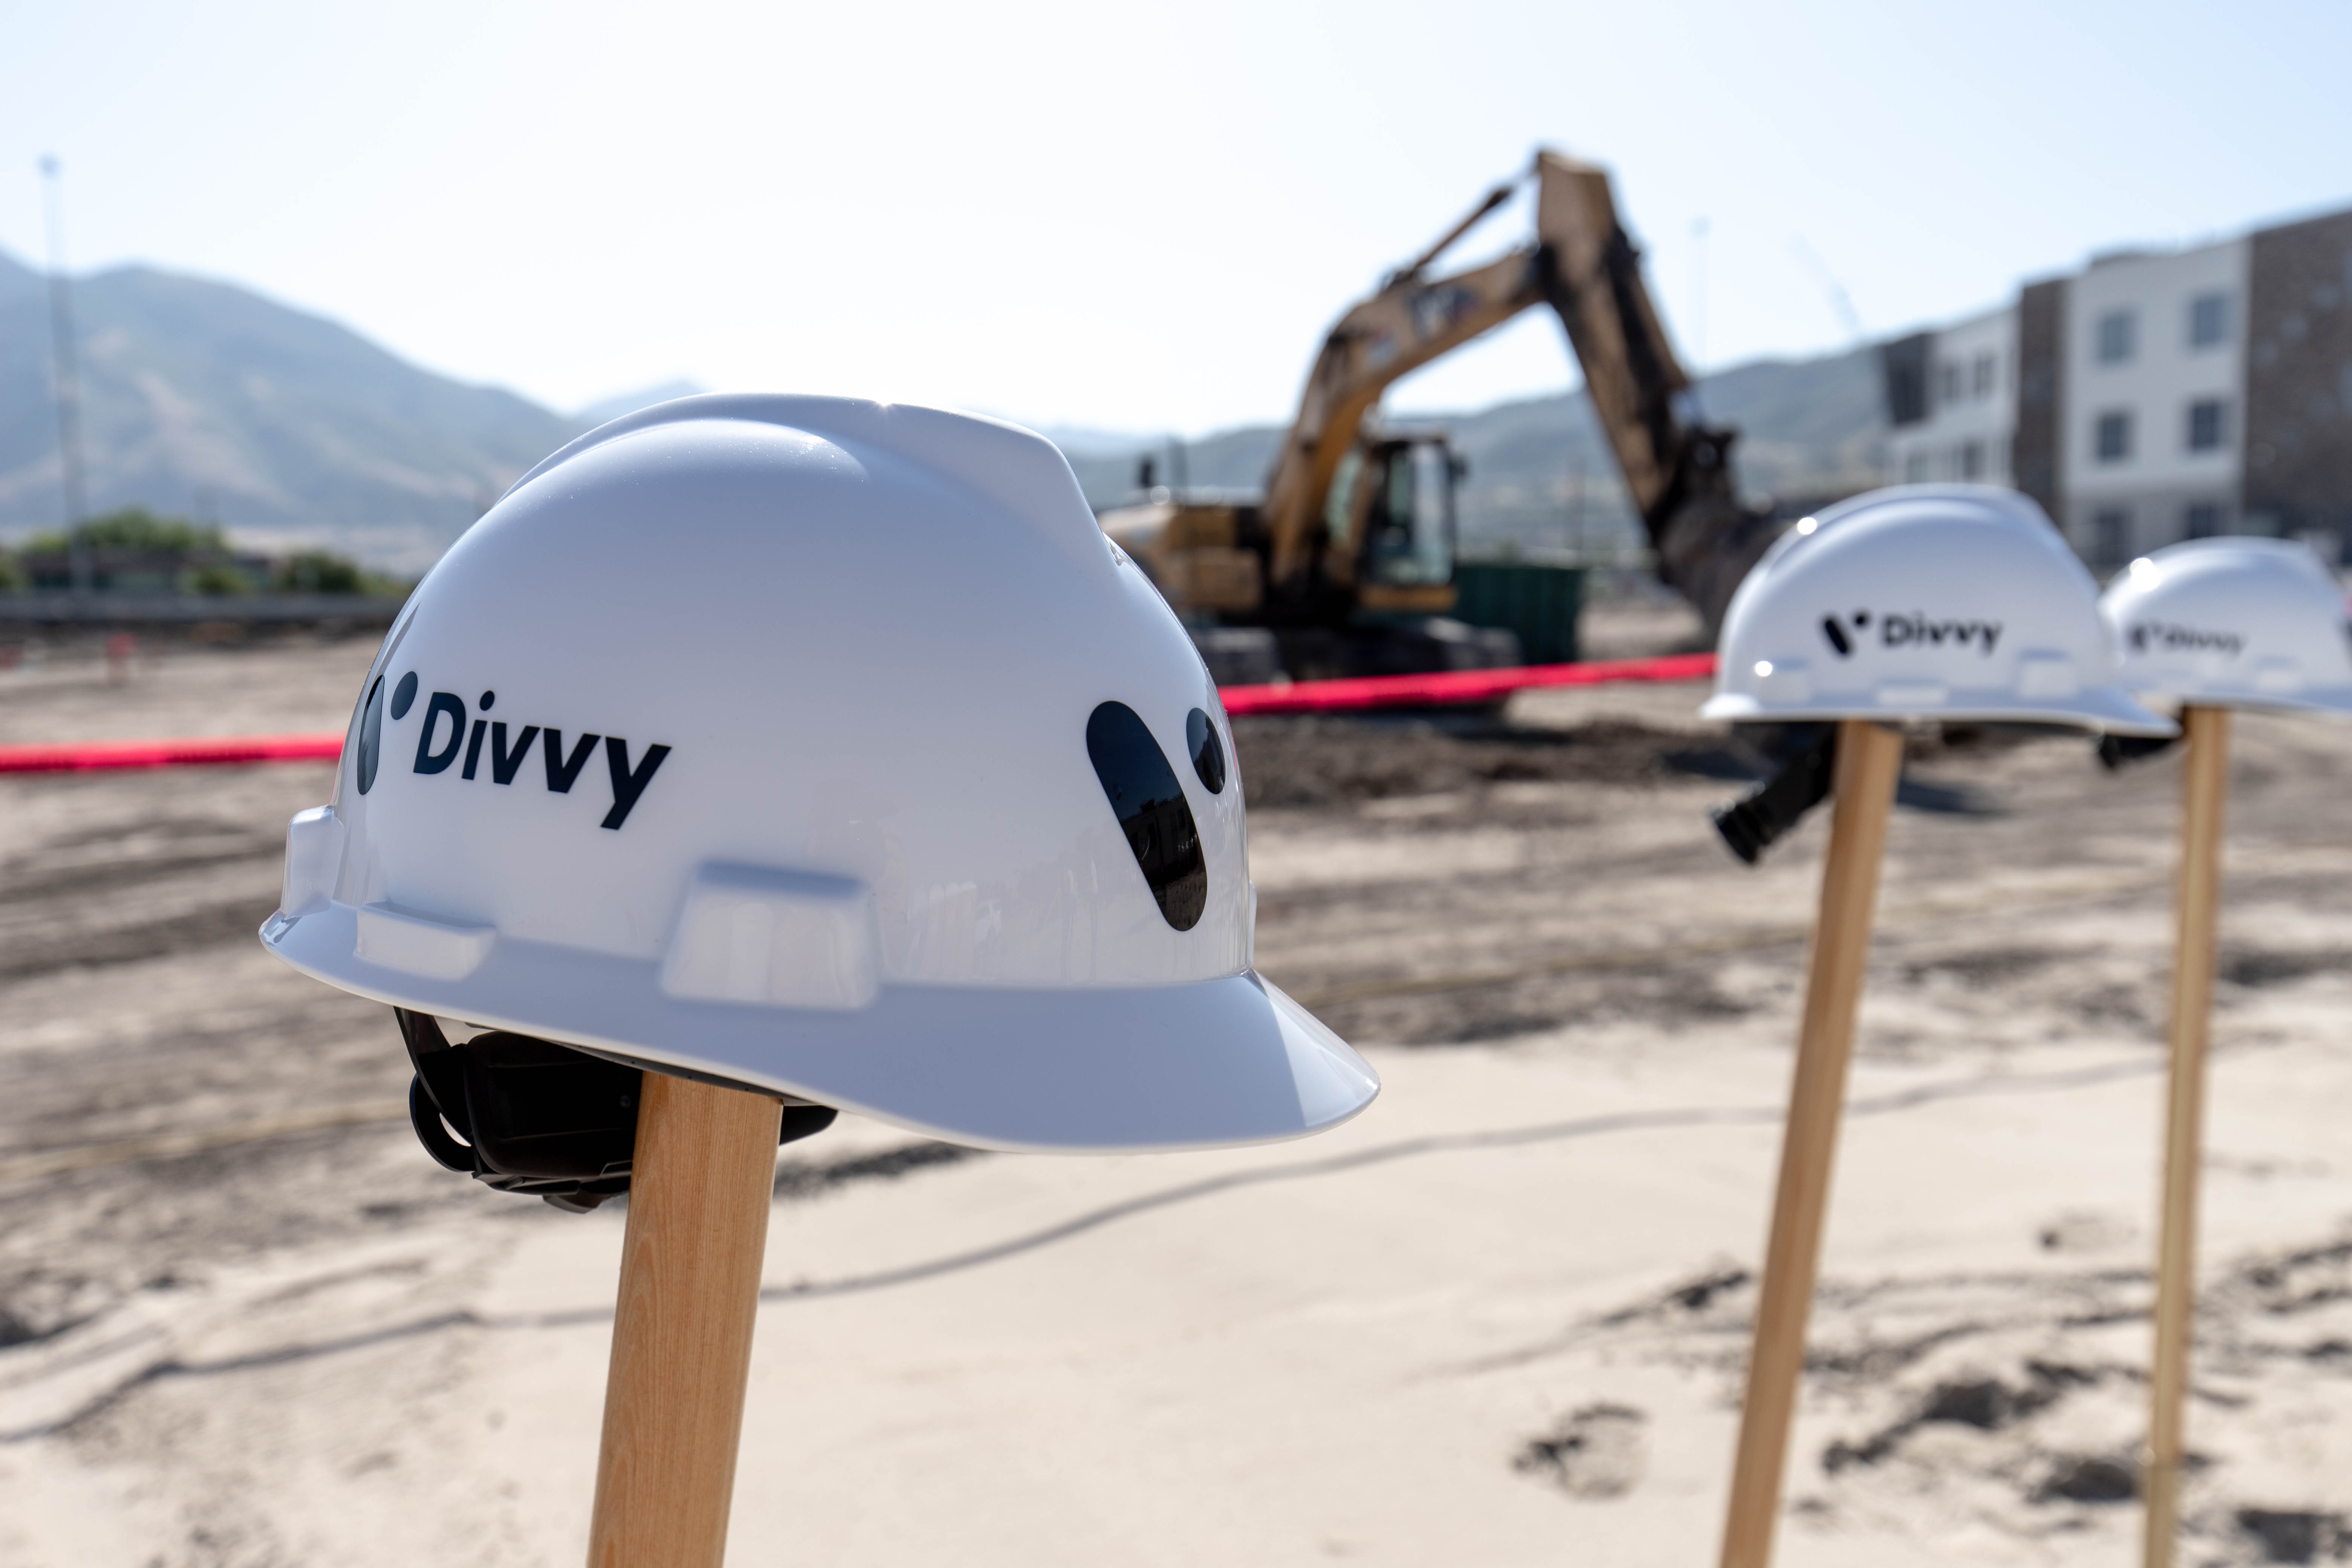 Divvy, one of Utah's fastest growing tech firms, broke ground on a new 150,000-square-foot headquarters in Draper on Monday. The company has innovated an expense account management platform that has attracted over 3,000 clients, and some $250 million in venture capital investment, in less than two years.